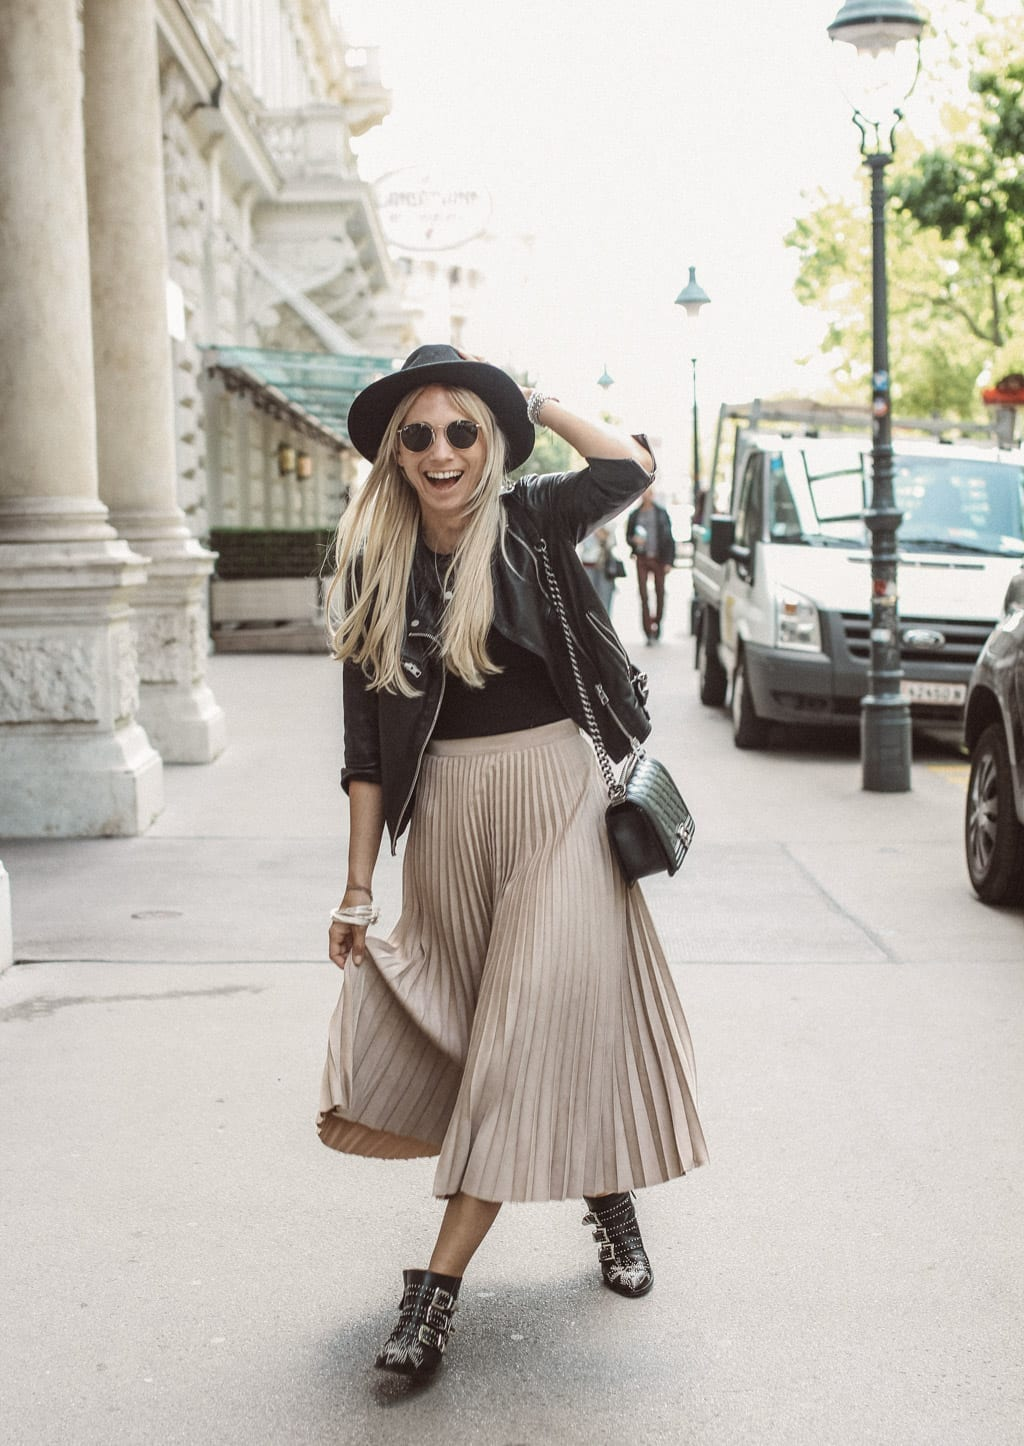 CK_Constantly-K-Karin-Kaswurm-Street-Style-Blog-Fashion-Vienna-rock-7649